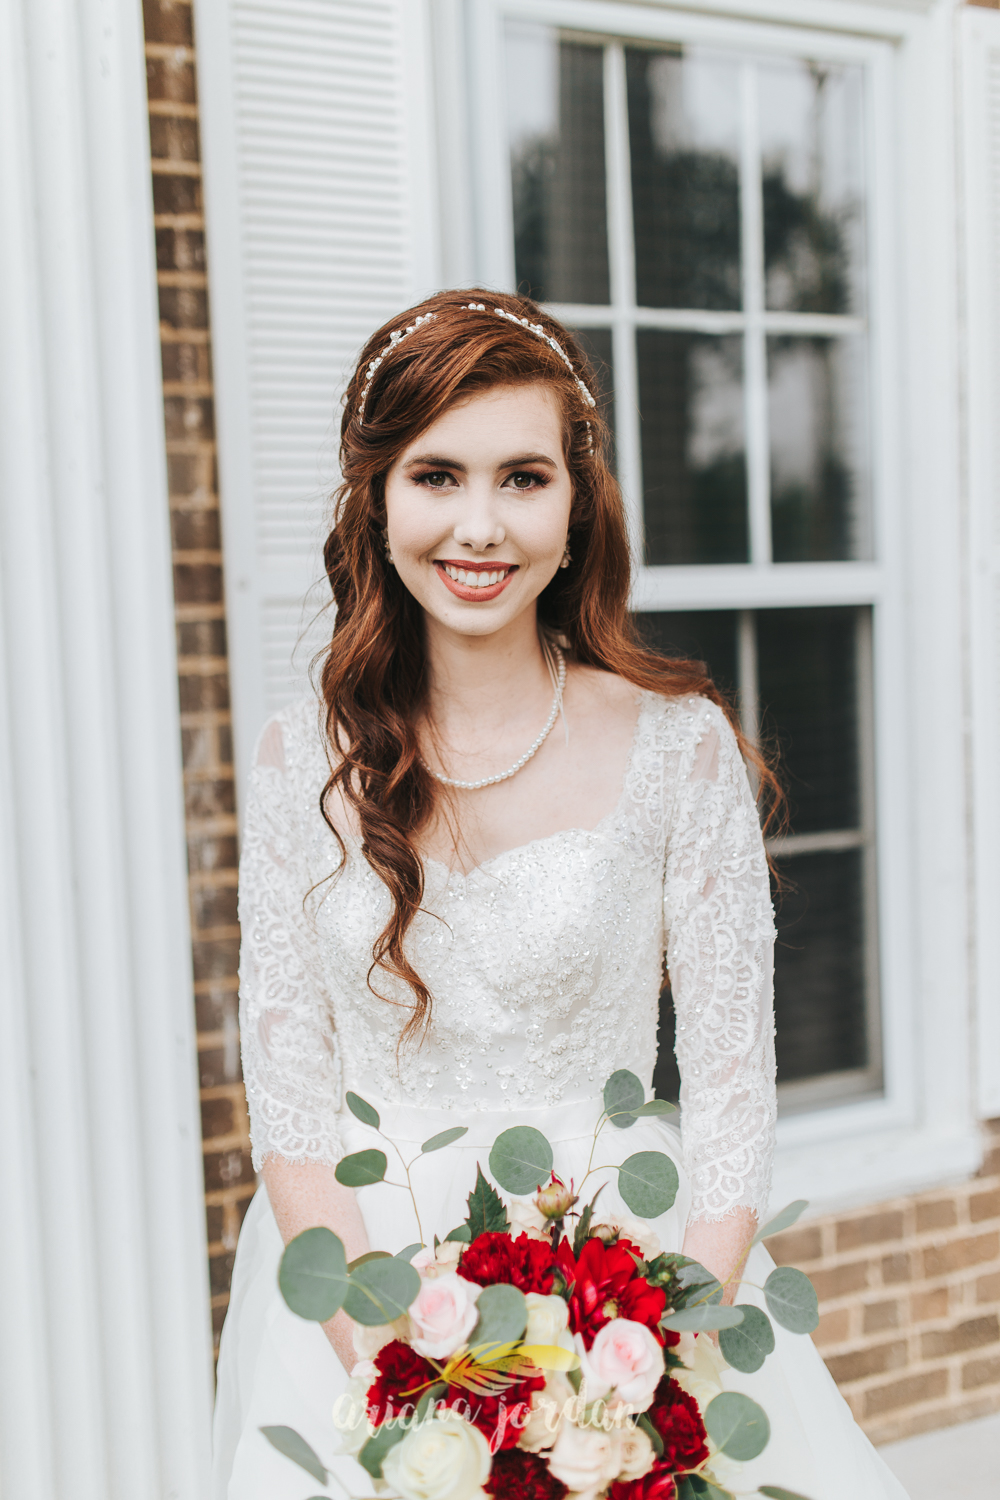 096 - Ariana Jordan - Kentucky Wedding Photographer - Landon & Tabitha 6467.jpg